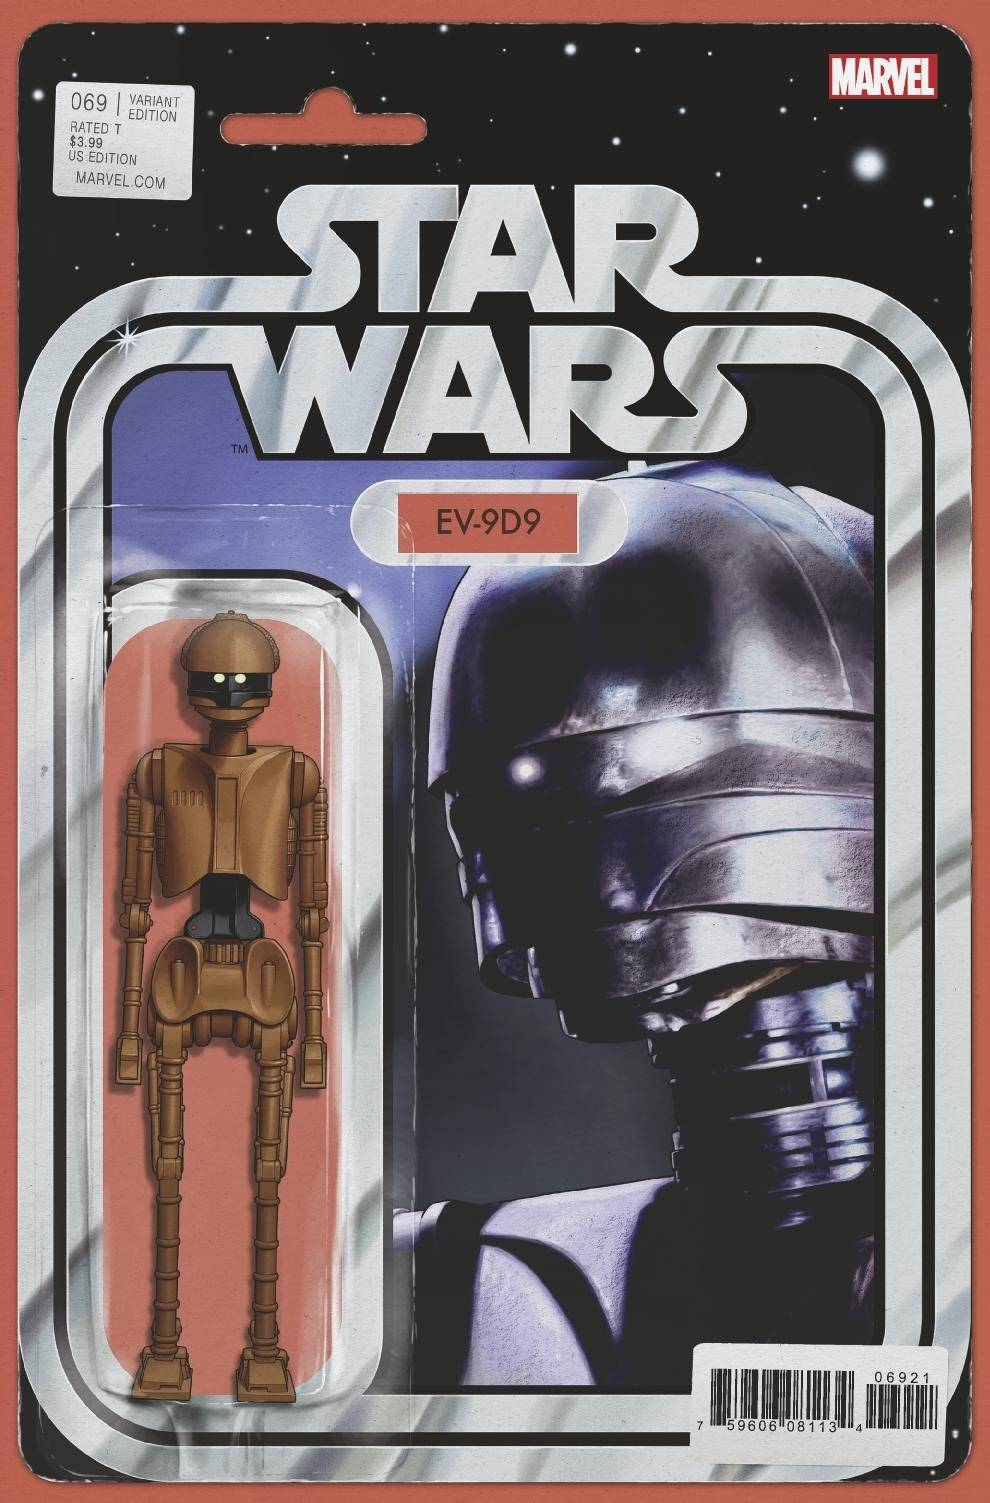 STAR WARS #69 CHRISTOPHER ACTION FIGURE VAR